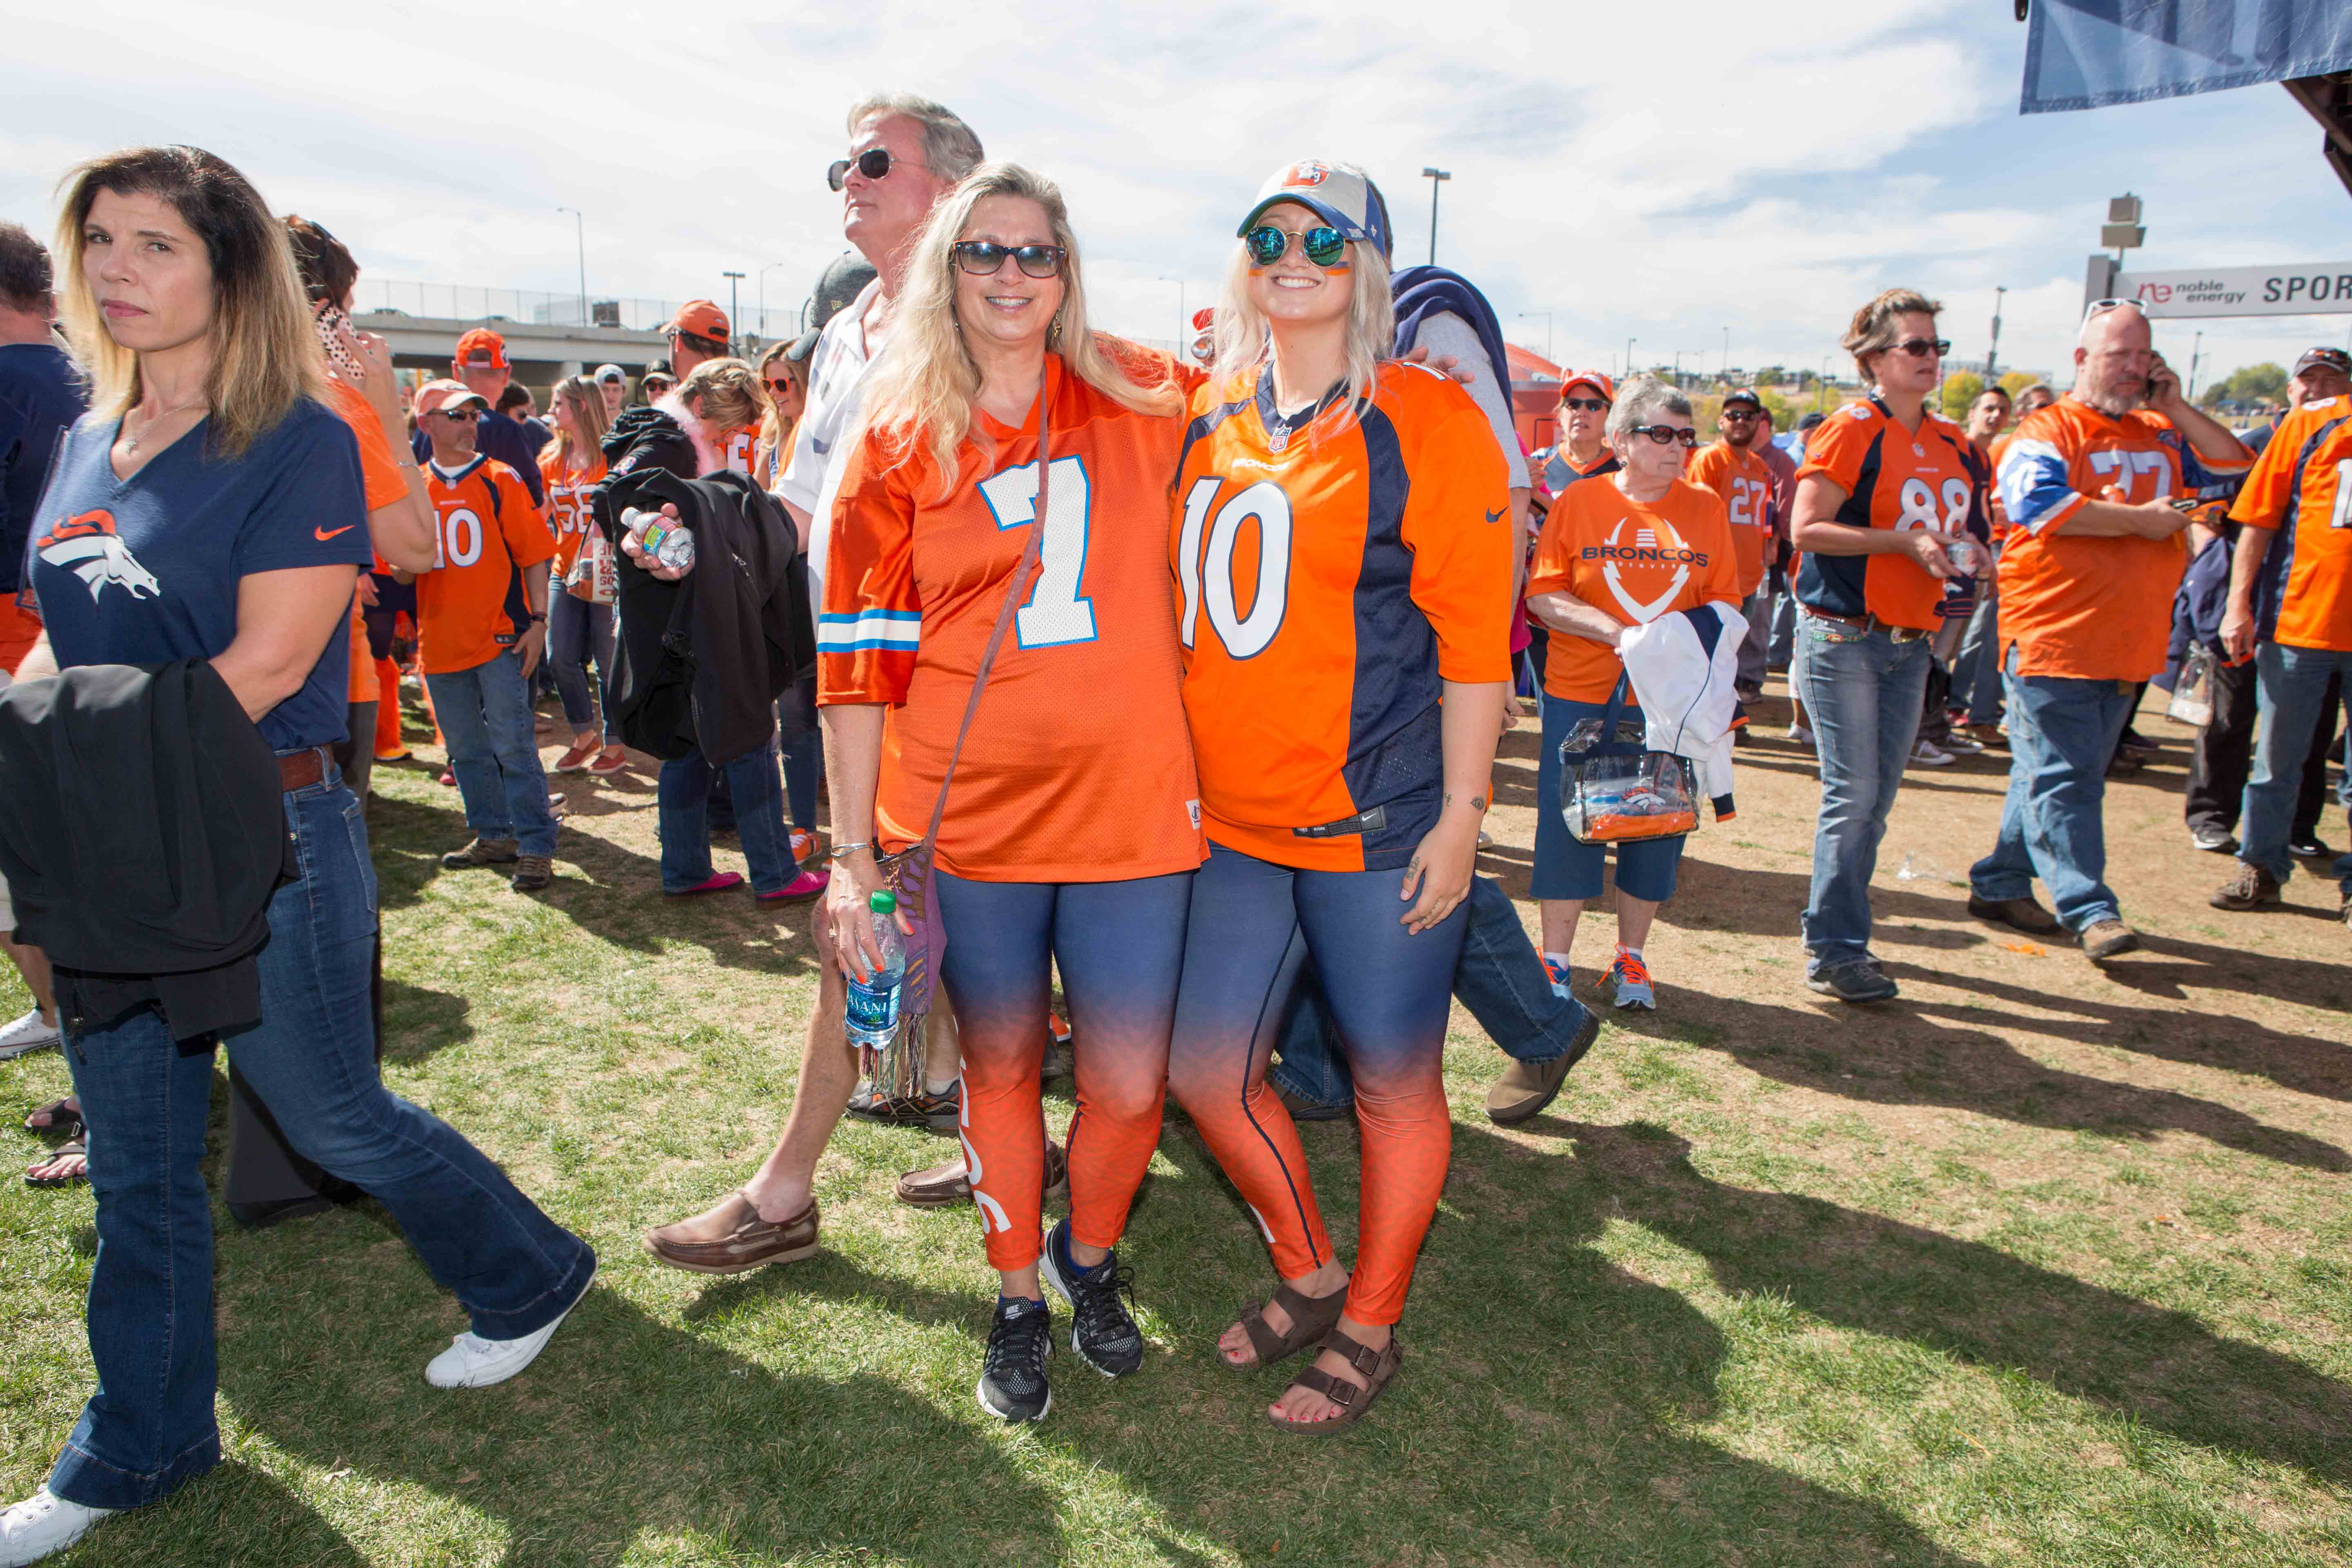 These girls were visiting Denver from Boise, Idaho. They found these athletic tights right inside of the Broncos Team Store.